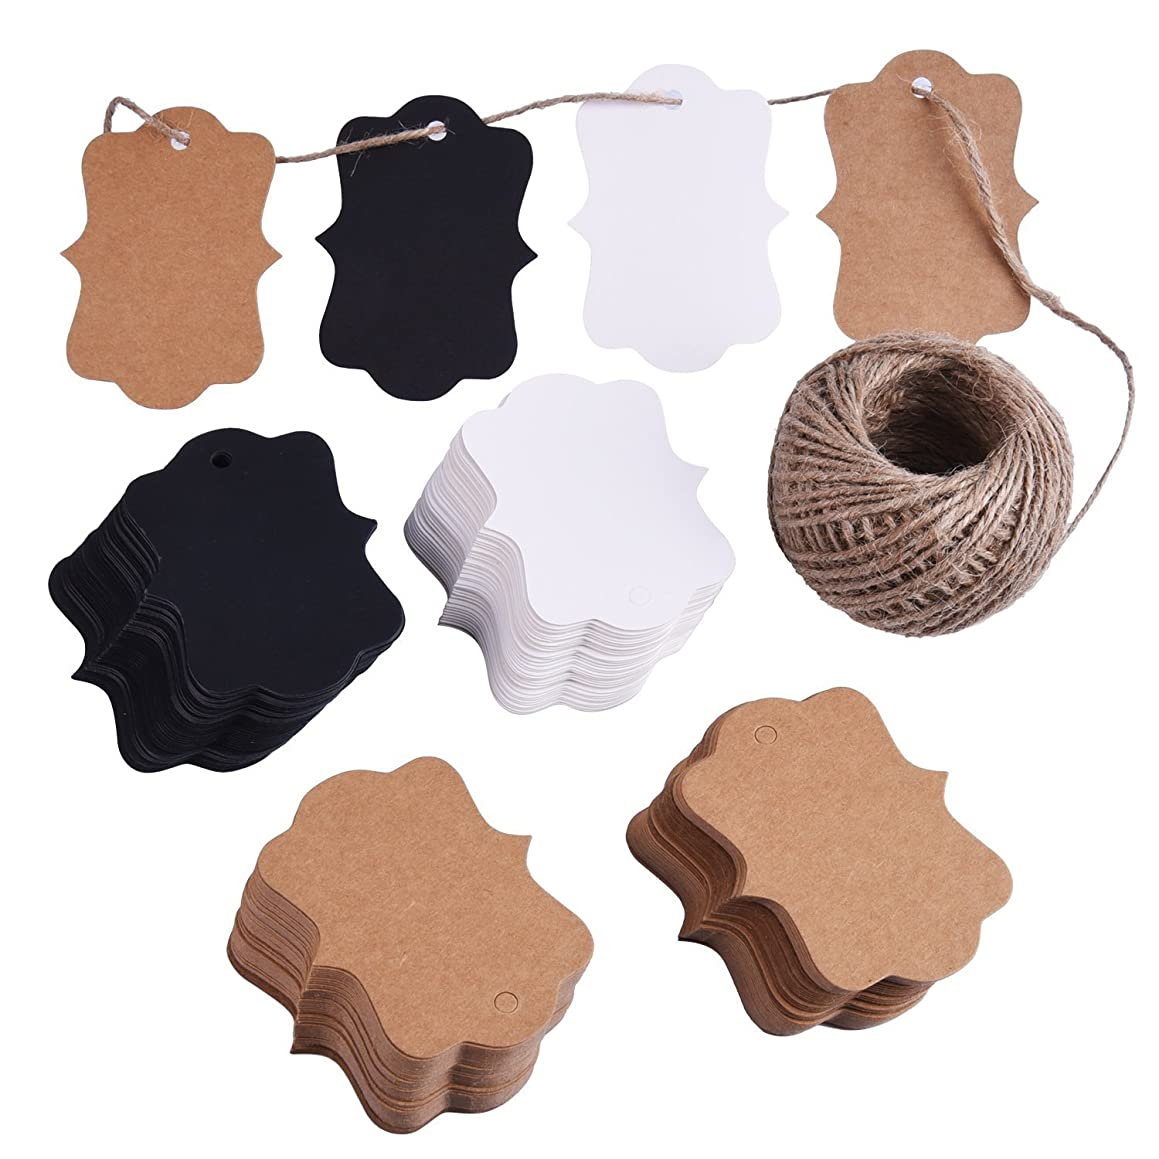 ABUFF 200 PCS Hanging Labels, Kraft Gift Tags, Craft Paper Tags, Blank Paper Tags Hole 30M Twine, Brown Black White